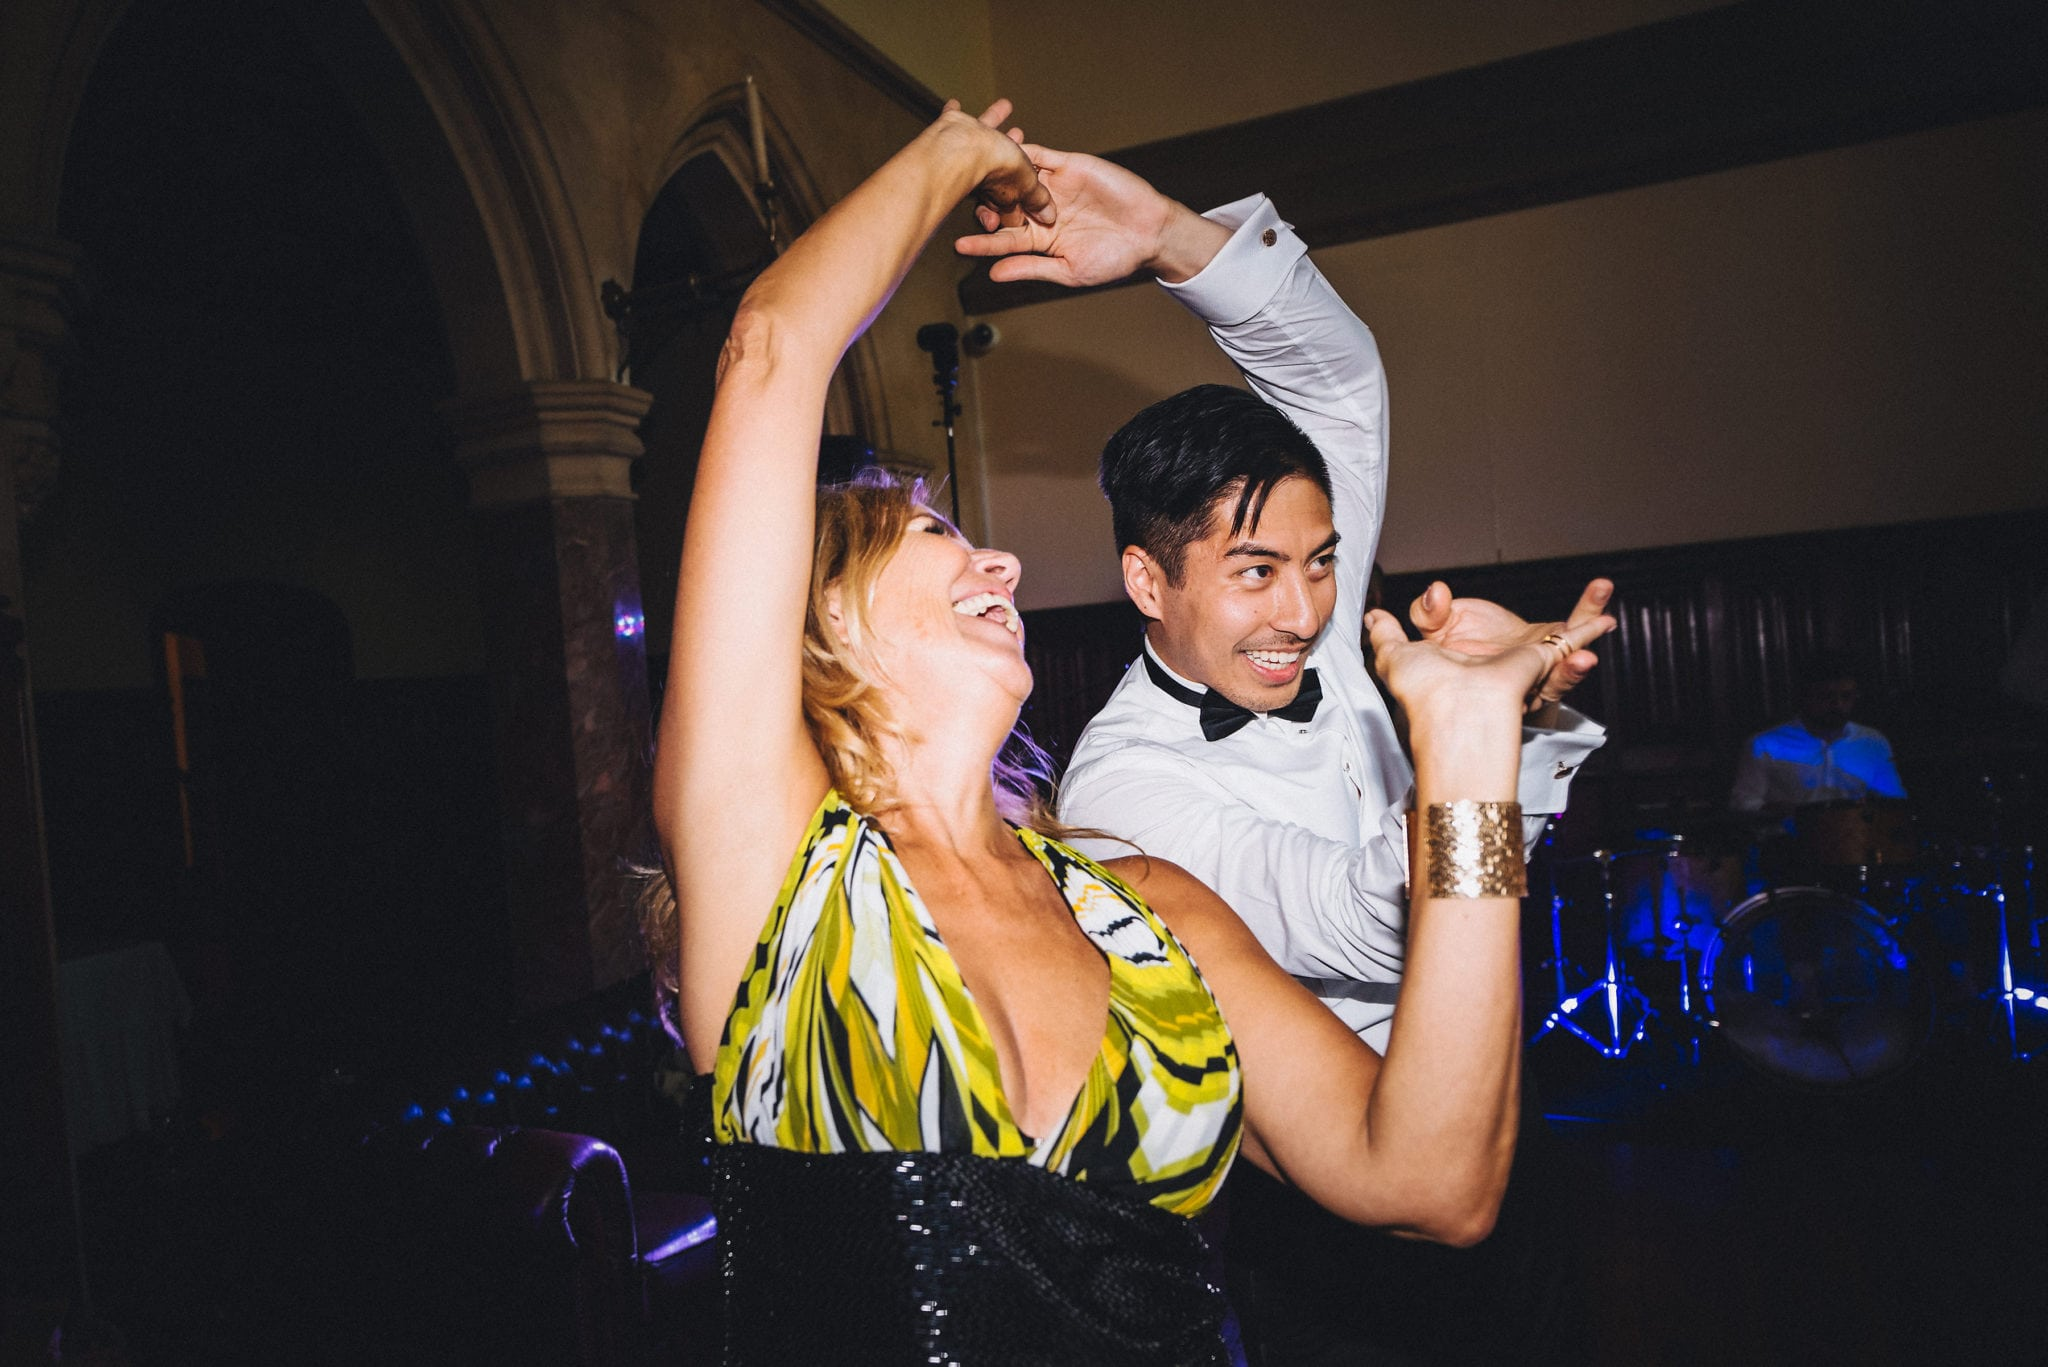 Guests twirl each other on dance floor